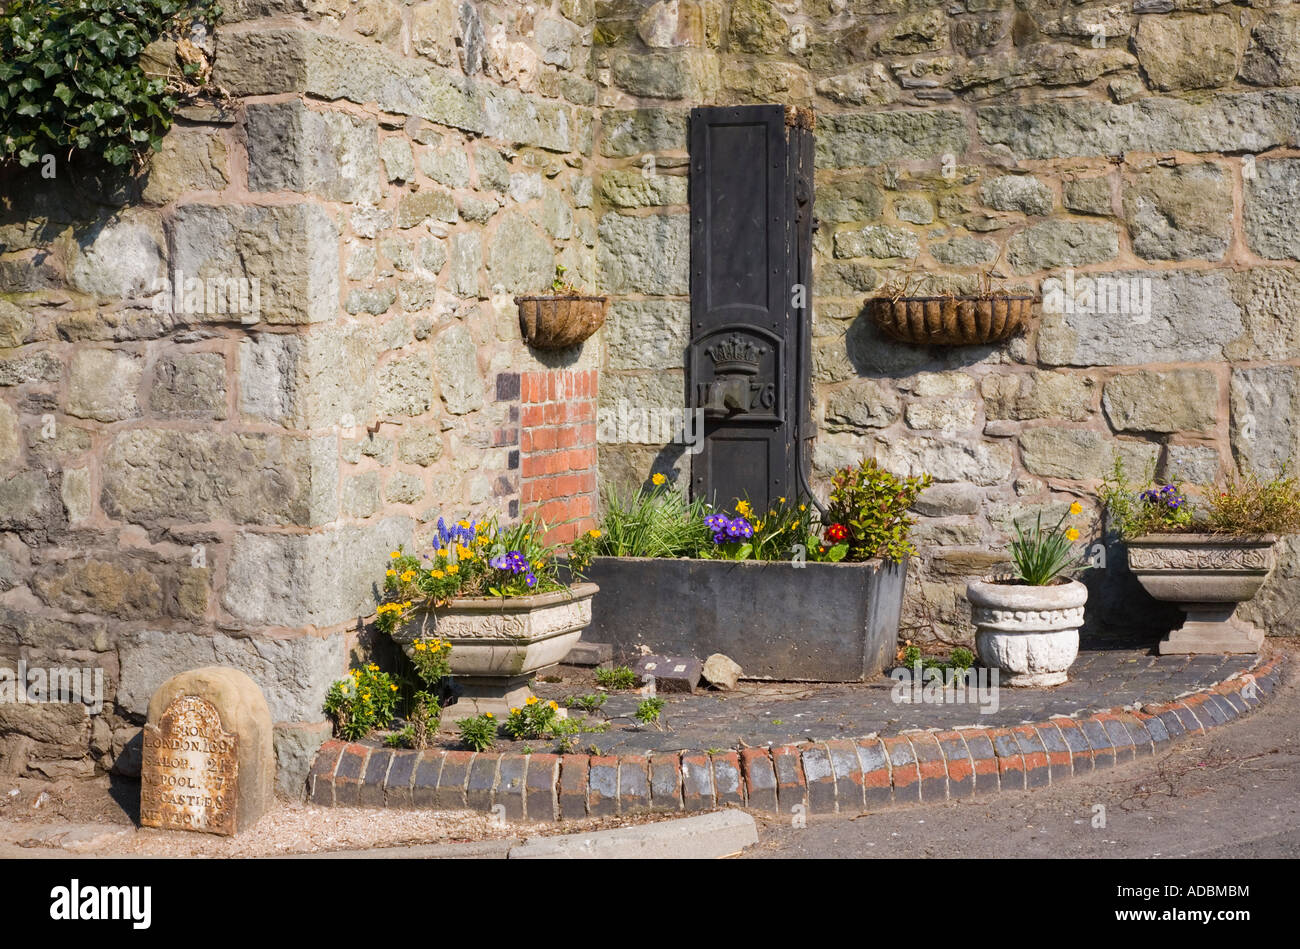 montgomery powys mid wales uk looking down to the square of old imperial milestone 19th century town water pump 1876 and flower trough by wall montgomery powys